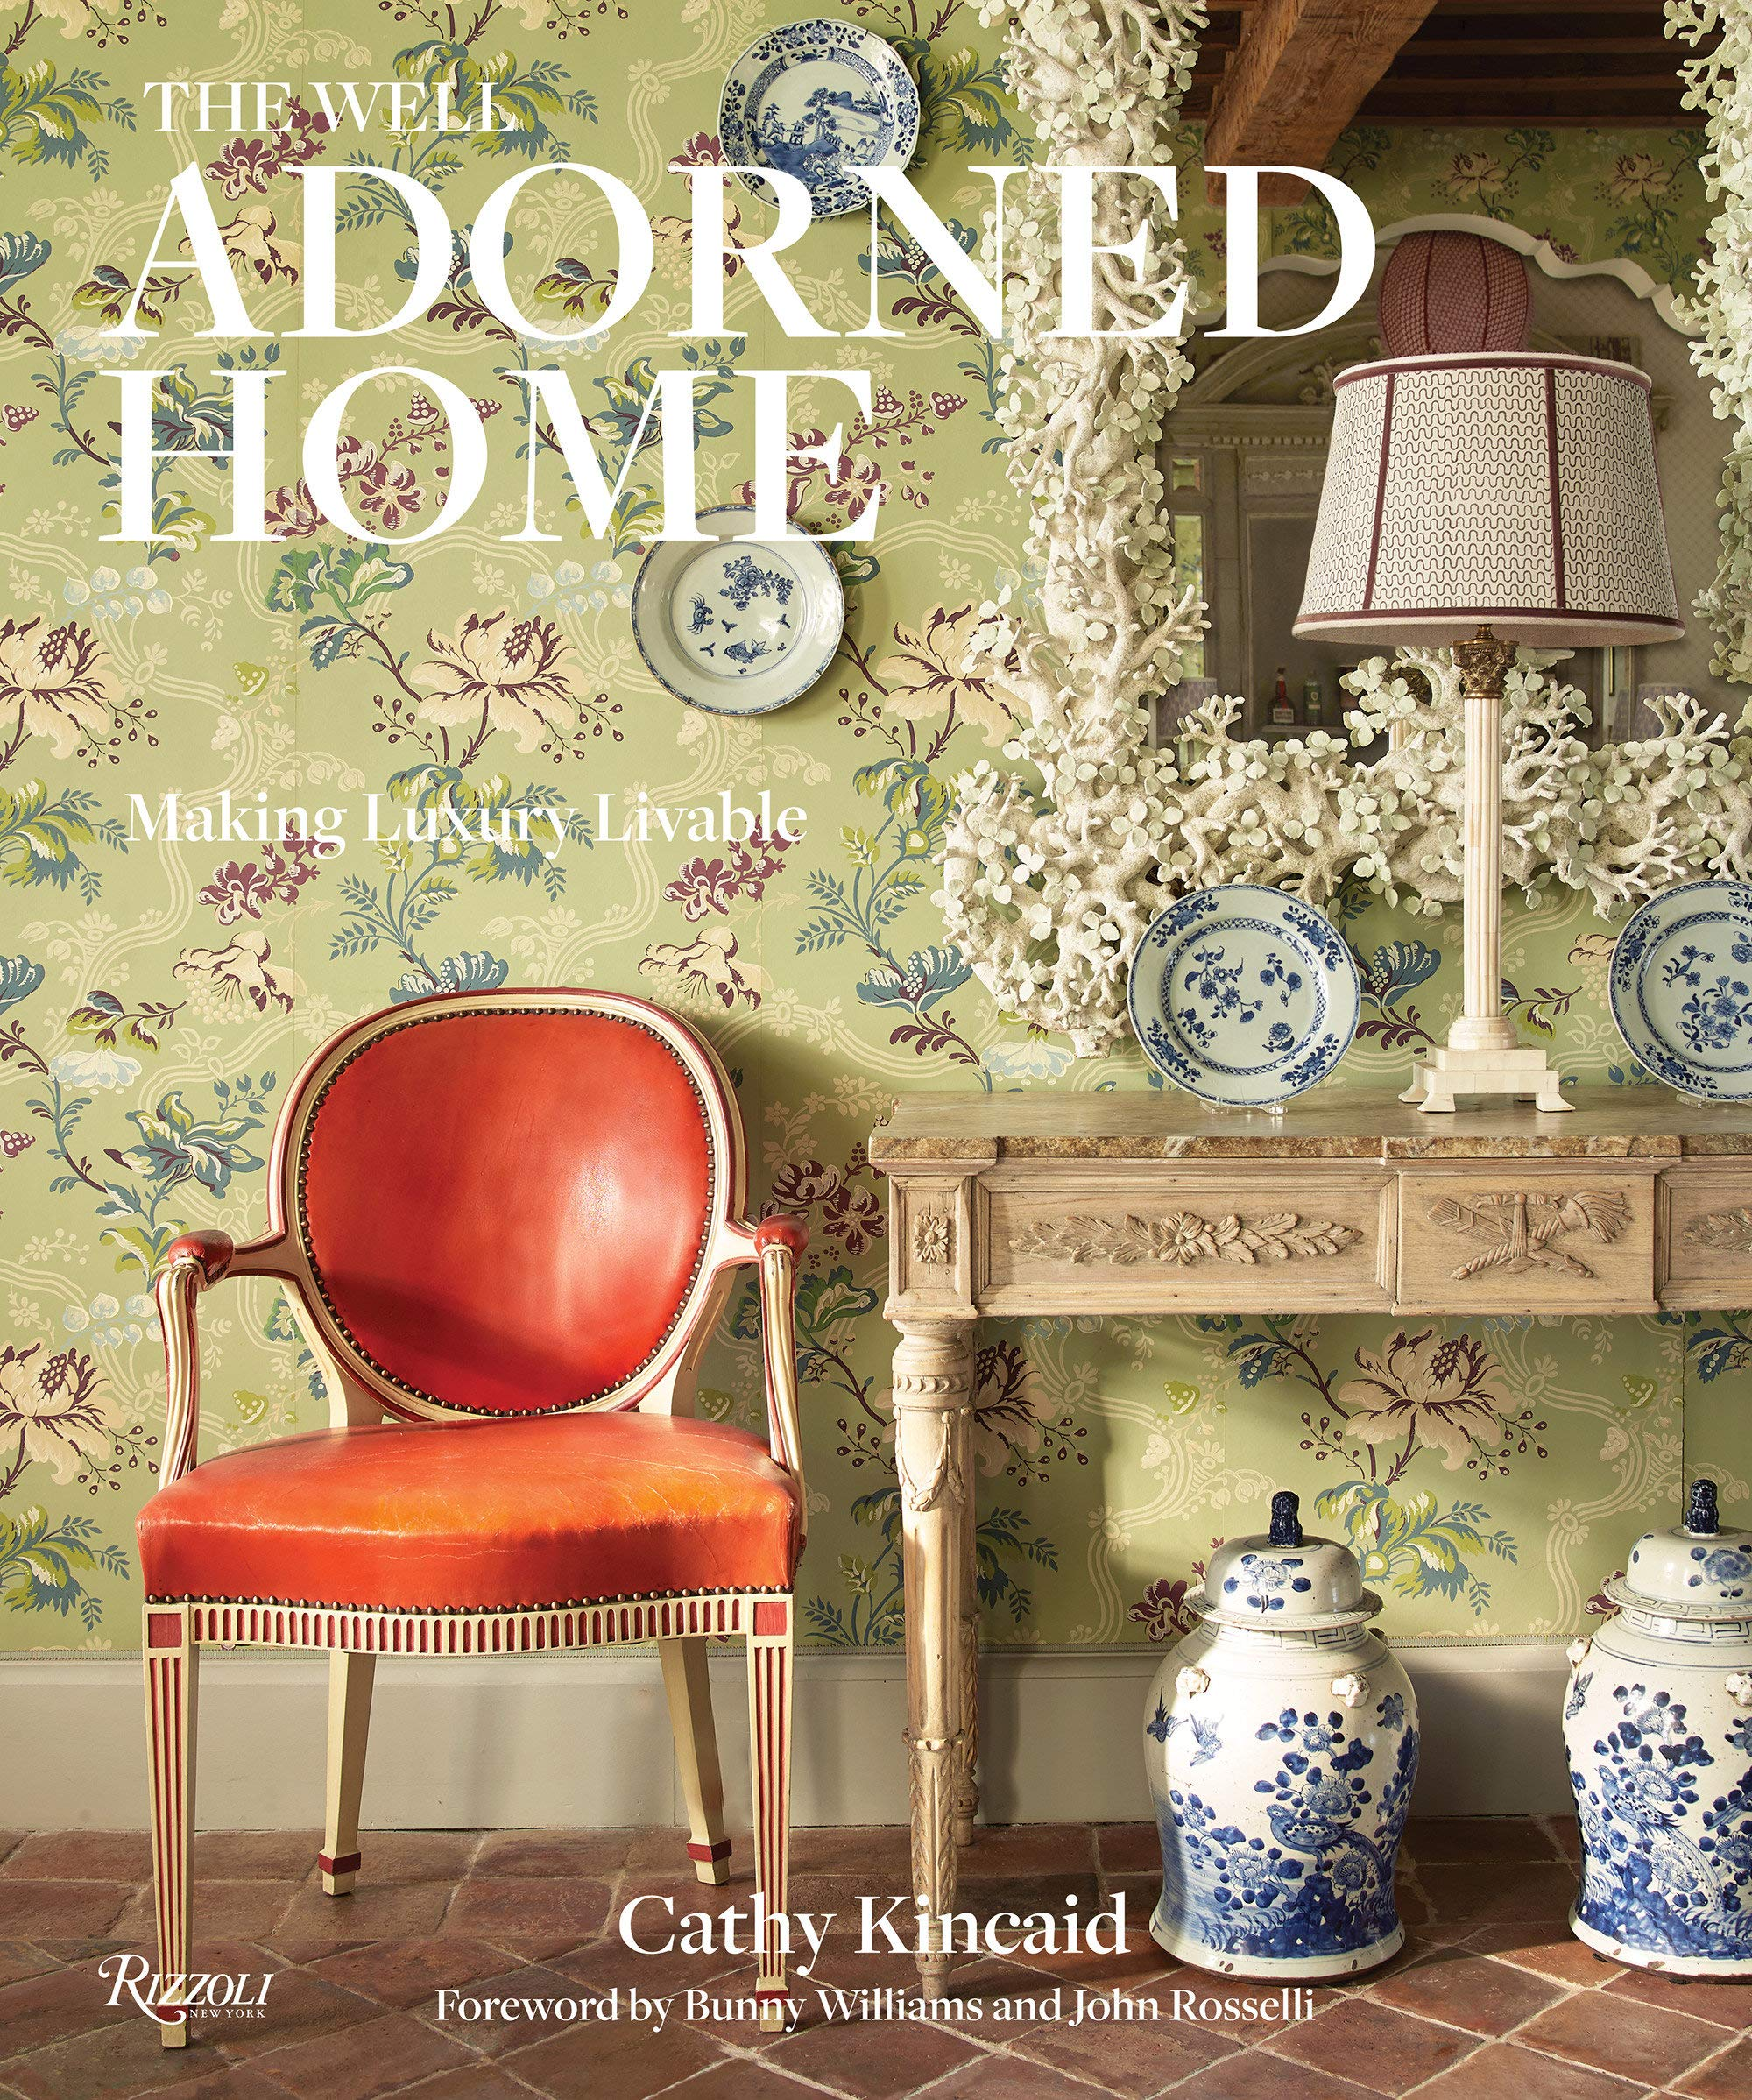 Book - The Well Adorned Home: Making Luxury Livable